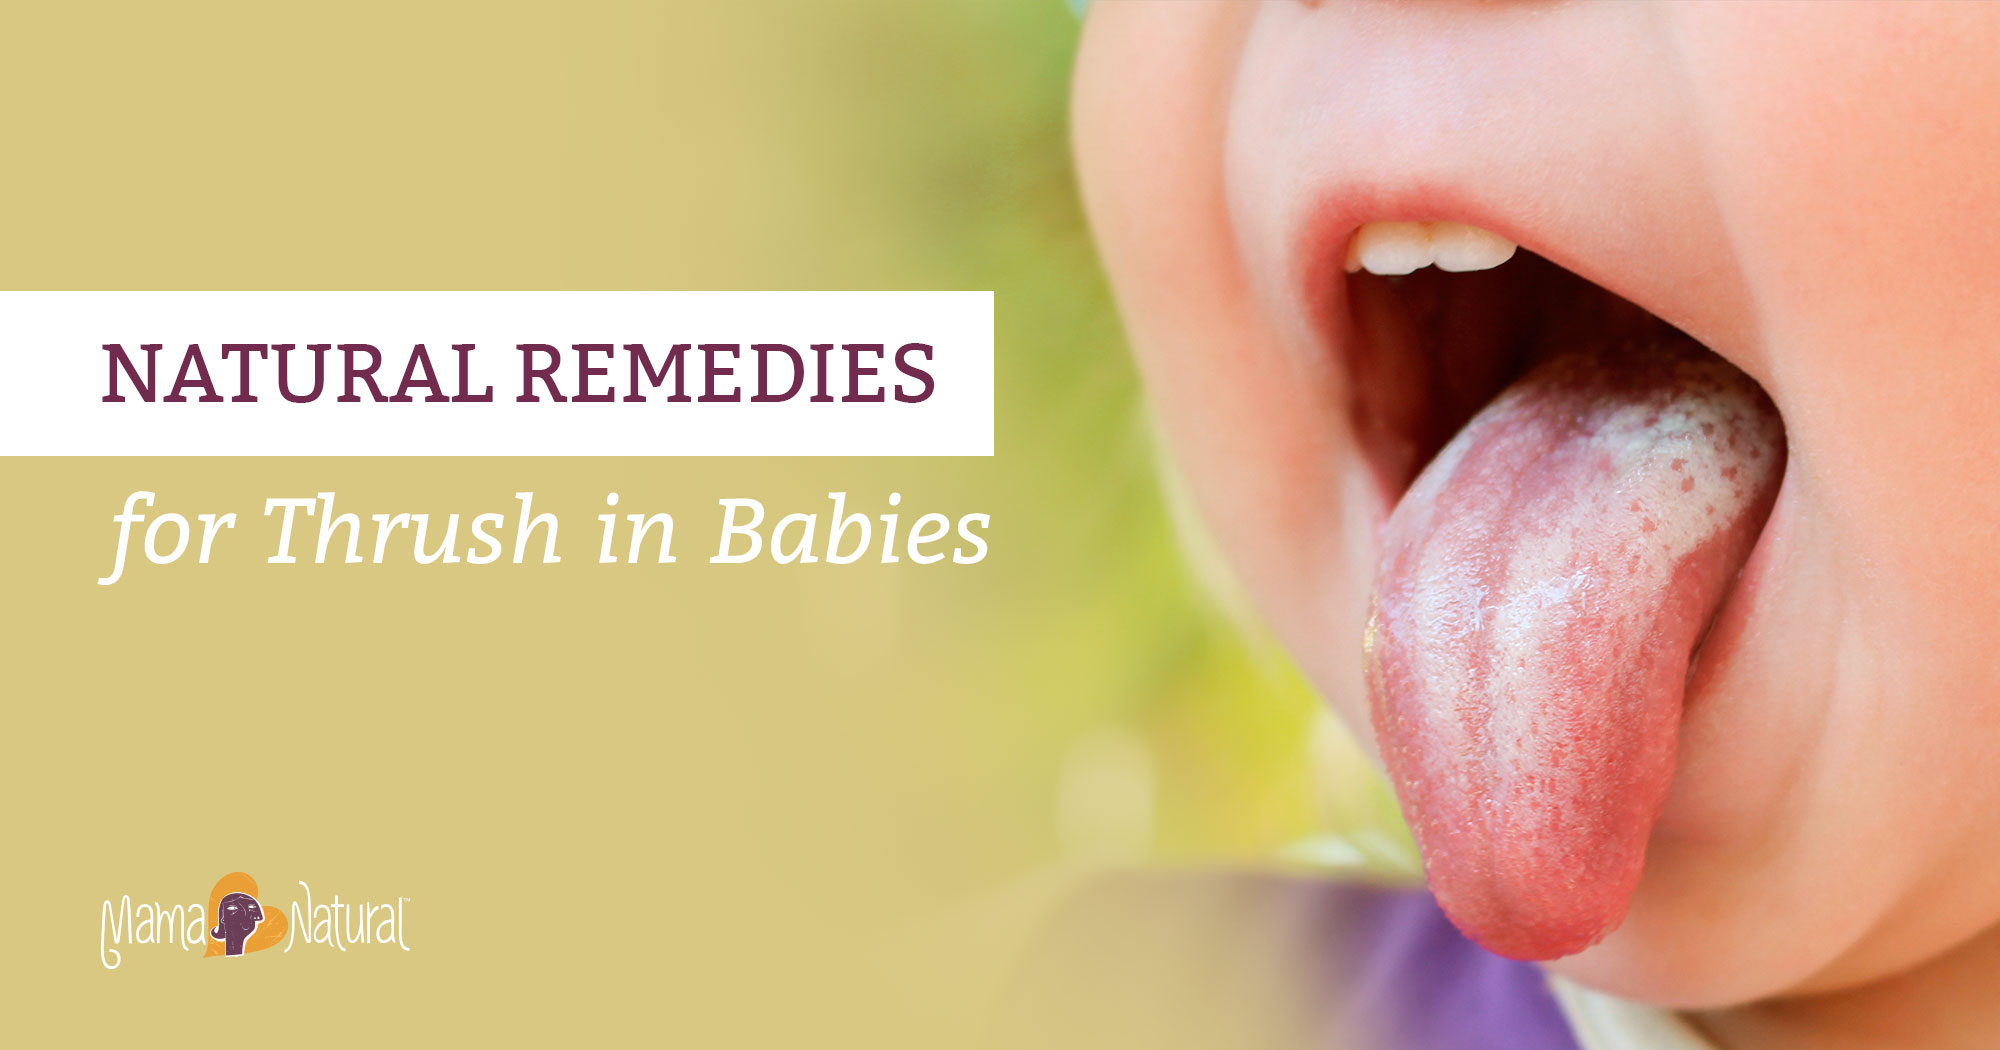 Thrush in Babies: Natural Remedies that Work | Mama Natural